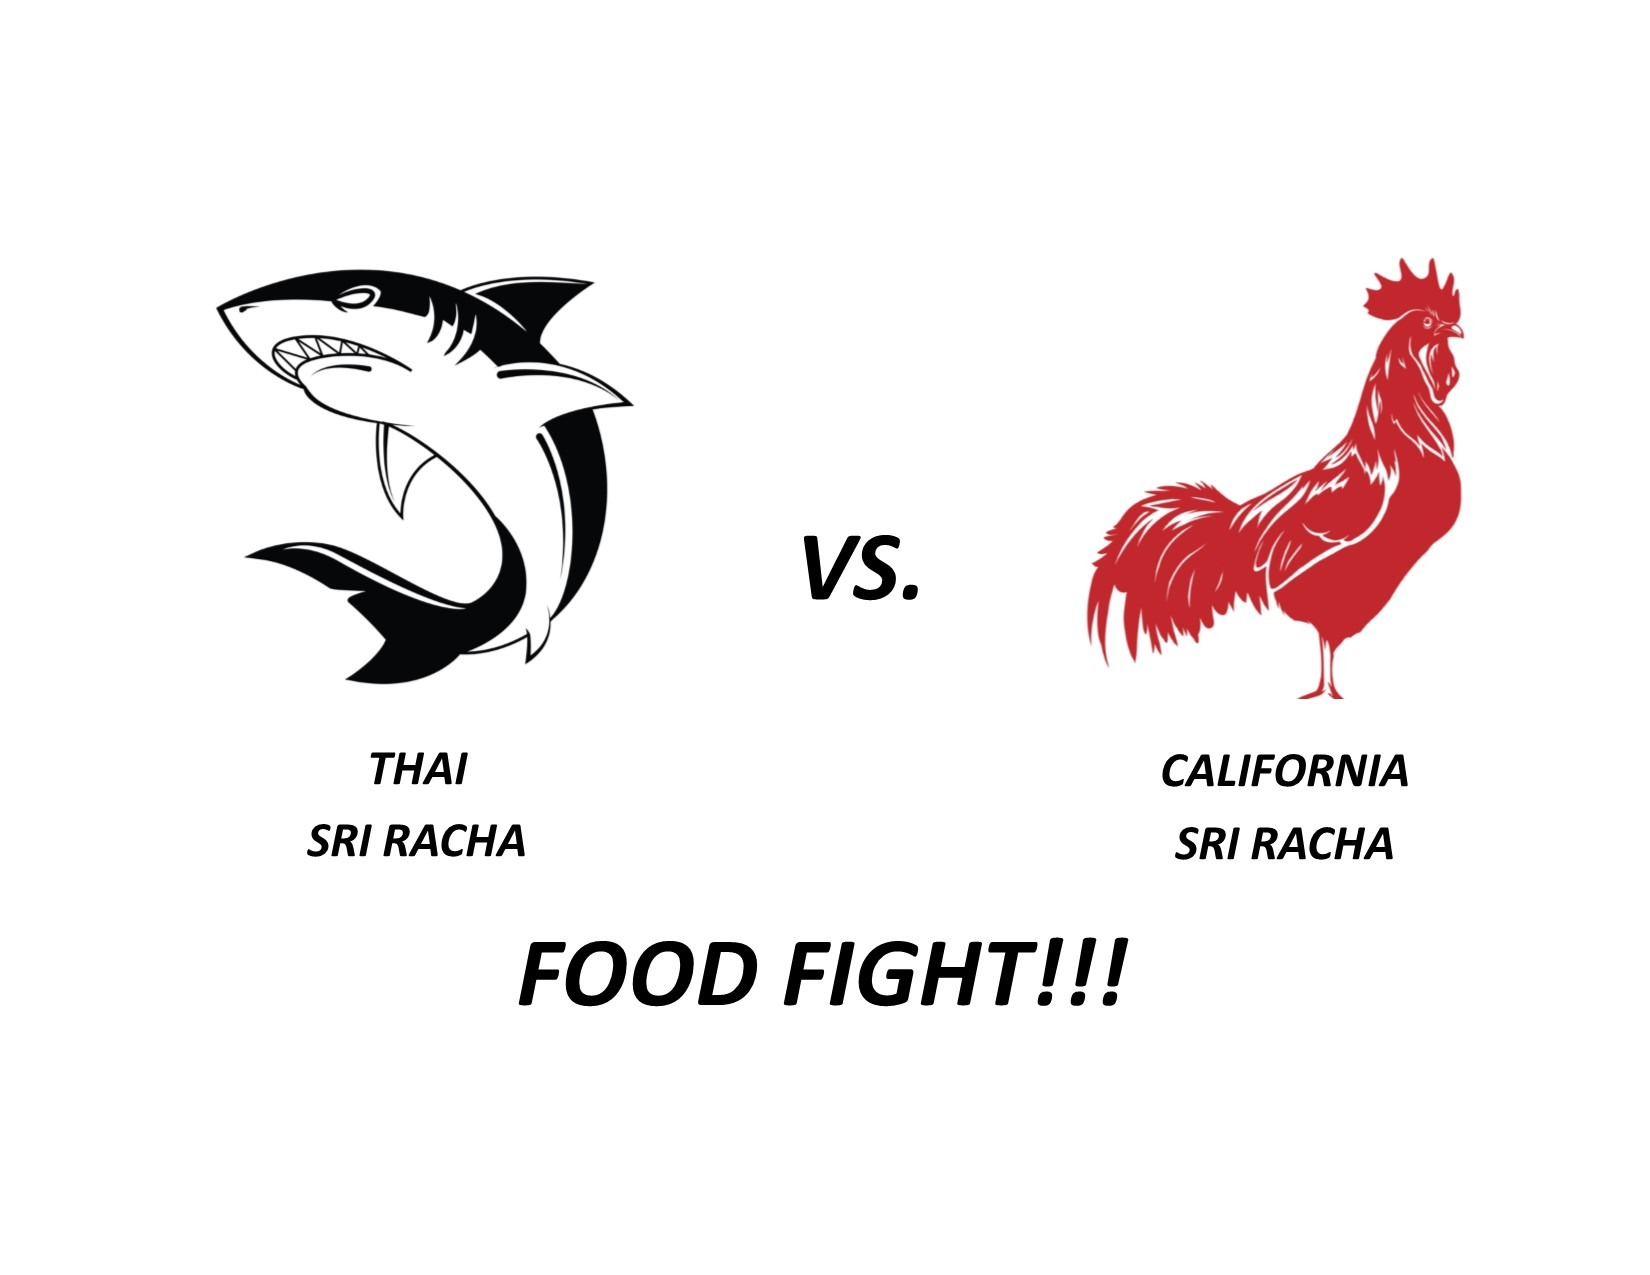 Thai vs California Sri Racha